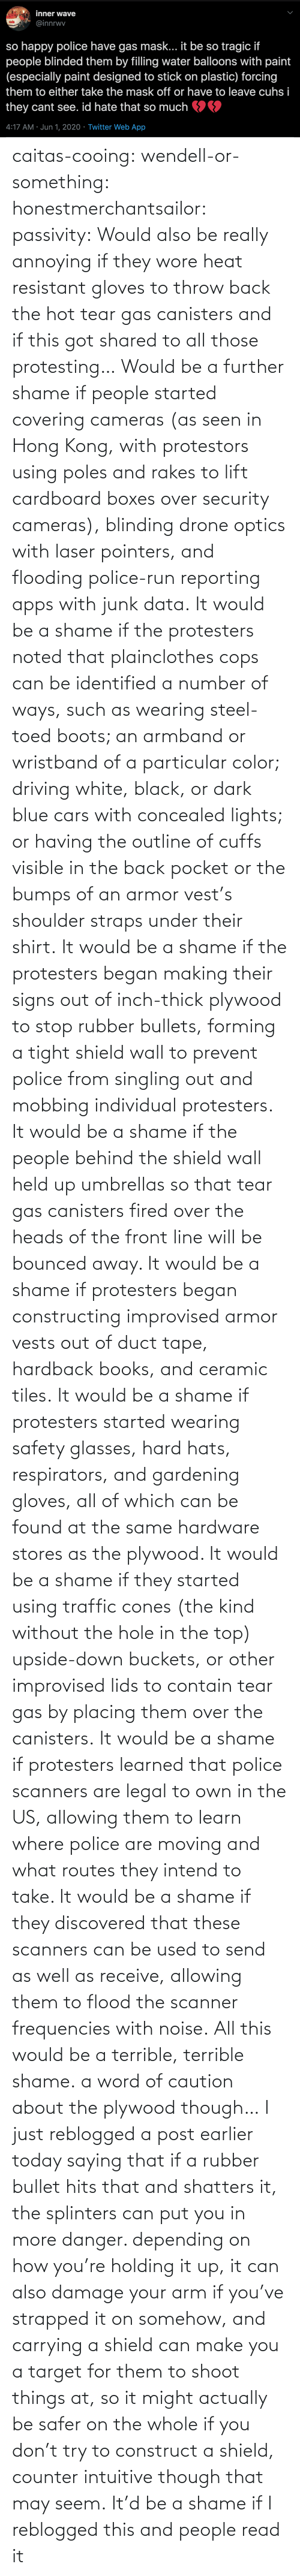 Driving: caitas-cooing:  wendell-or-something: honestmerchantsailor:  passivity: Would also be really annoying if they wore heat resistant gloves to throw back the hot tear gas canisters and if this got shared to all those protesting… Would be a further shame if people started covering cameras (as seen in Hong Kong, with protestors using poles and rakes to lift cardboard boxes over security cameras), blinding drone optics with laser pointers, and flooding police-run reporting apps with junk data. It would be a shame if the protesters noted that plainclothes cops can be identified a number of ways, such as wearing steel-toed boots; an armband or wristband of a particular color; driving white, black, or dark blue cars with concealed lights; or having the outline of cuffs visible in the back pocket or the bumps of an armor vest's shoulder straps under their shirt. It would be a shame if the protesters began making their signs out of inch-thick plywood to stop rubber bullets, forming a tight shield wall to prevent police from singling out and mobbing individual protesters. It would be a shame if the people behind the shield wall held up umbrellas so that tear gas canisters fired over the heads of the front line will be bounced away. It would be a shame if protesters began constructing improvised armor vests out of duct tape, hardback books, and ceramic tiles. It would be a shame if protesters started wearing safety glasses, hard hats, respirators, and gardening gloves, all of which can be found at the same hardware stores as the plywood. It would be a shame if they started using traffic cones (the kind without the hole in the top) upside-down buckets, or other improvised lids to contain tear gas by placing them over the canisters. It would be a shame if protesters learned that police scanners are legal to own in the US, allowing them to learn where police are moving and what routes they intend to take. It would be a shame if they discovered that these scanners can be used to send as well as receive, allowing them to flood the scanner frequencies with noise. All this would be a terrible, terrible shame.    a word of caution about the plywood though… I just reblogged a post earlier today saying that if a rubber bullet hits that and shatters it, the splinters can put you in more danger. depending on how you're holding it up, it can also damage your arm if you've strapped it on somehow, and carrying a shield can make you a target for them to shoot things at, so it might actually be safer on the whole if you don't try to construct a shield, counter intuitive though that may seem.    It'd be a shame if I reblogged this and people read it